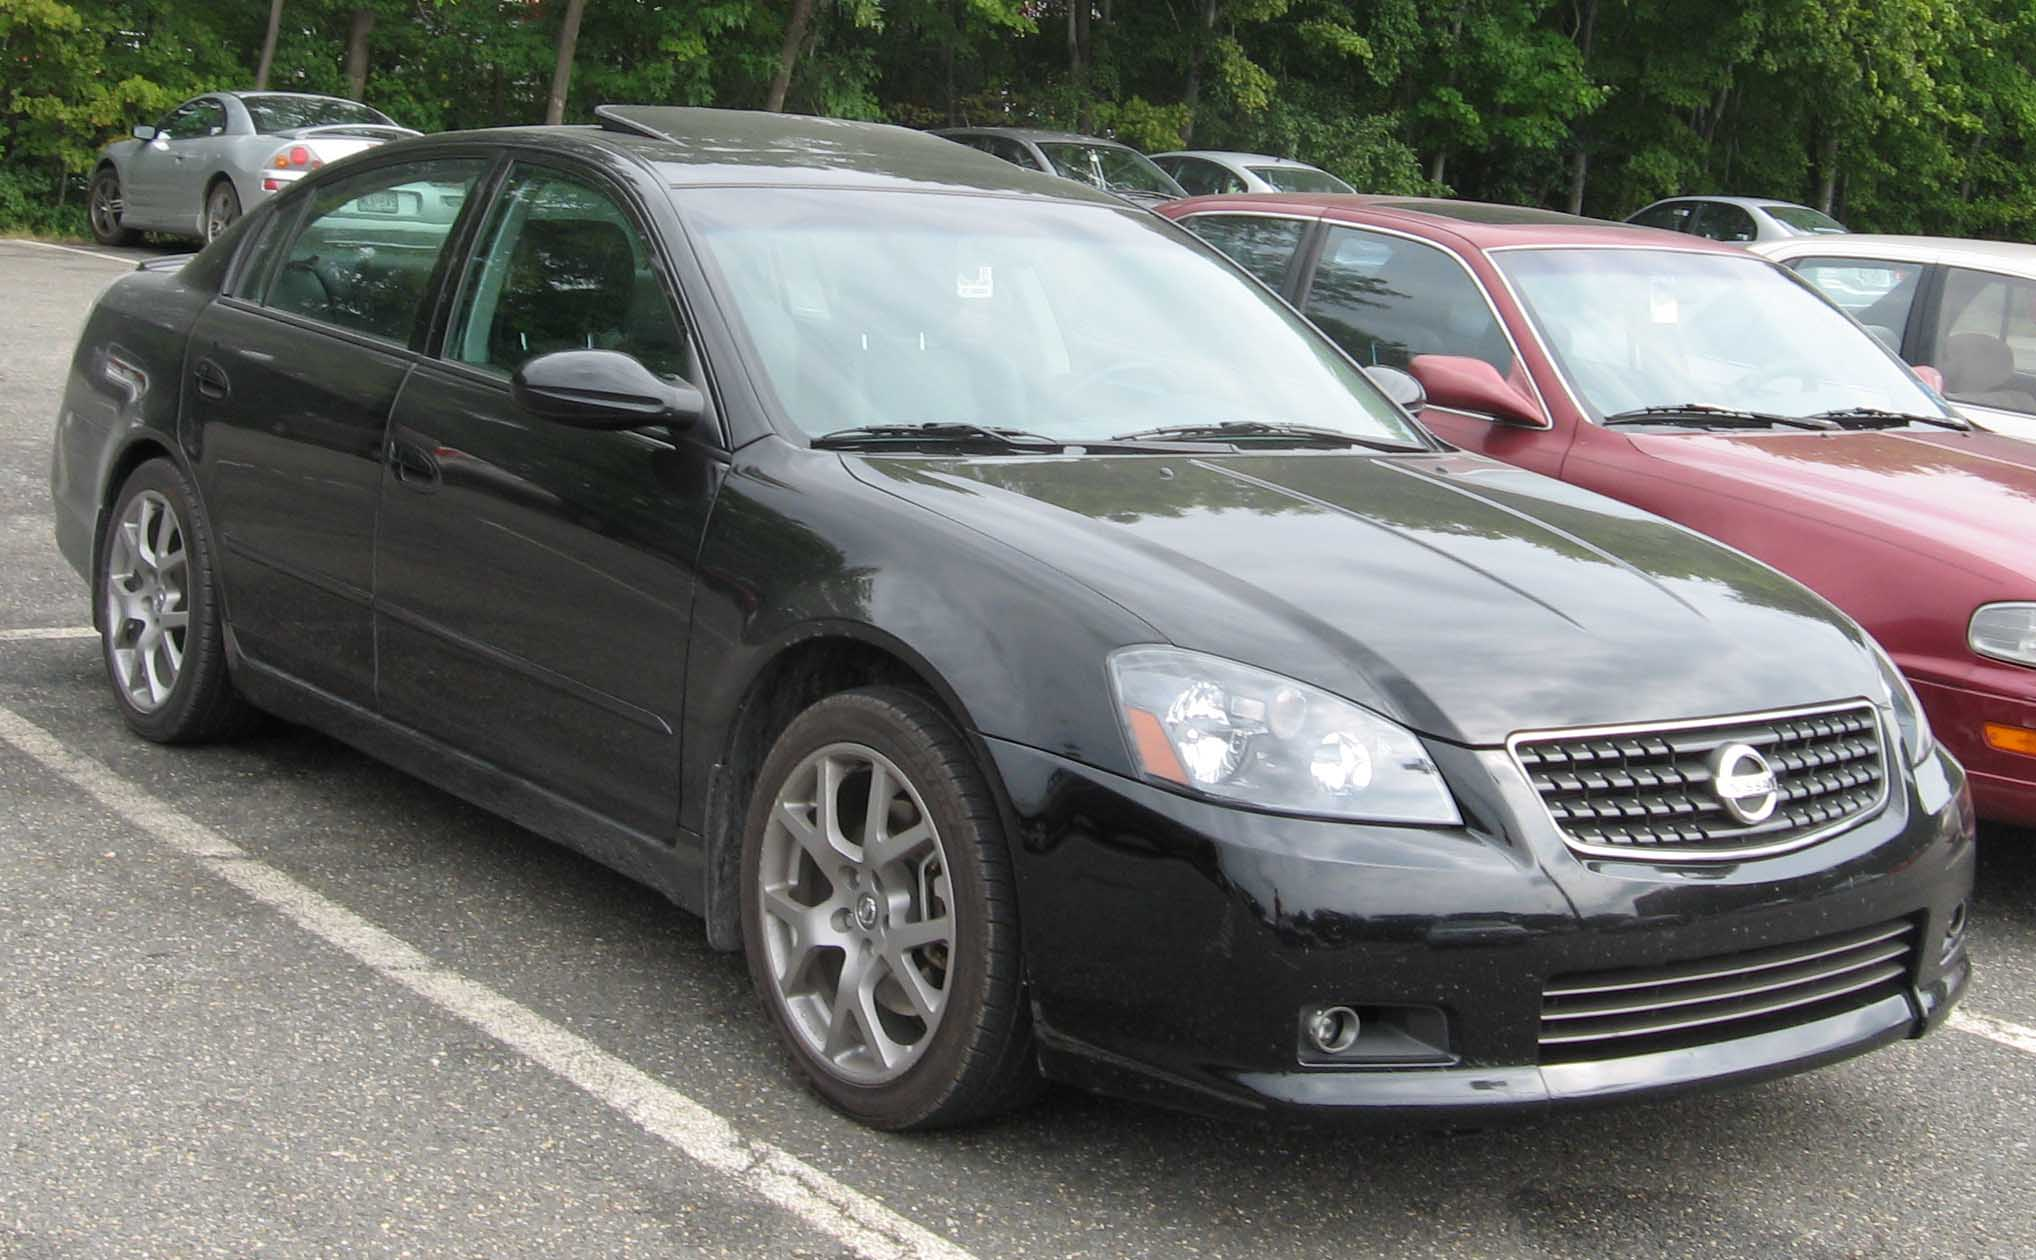 file:05-06 nissan altima se-r - wikimedia commons